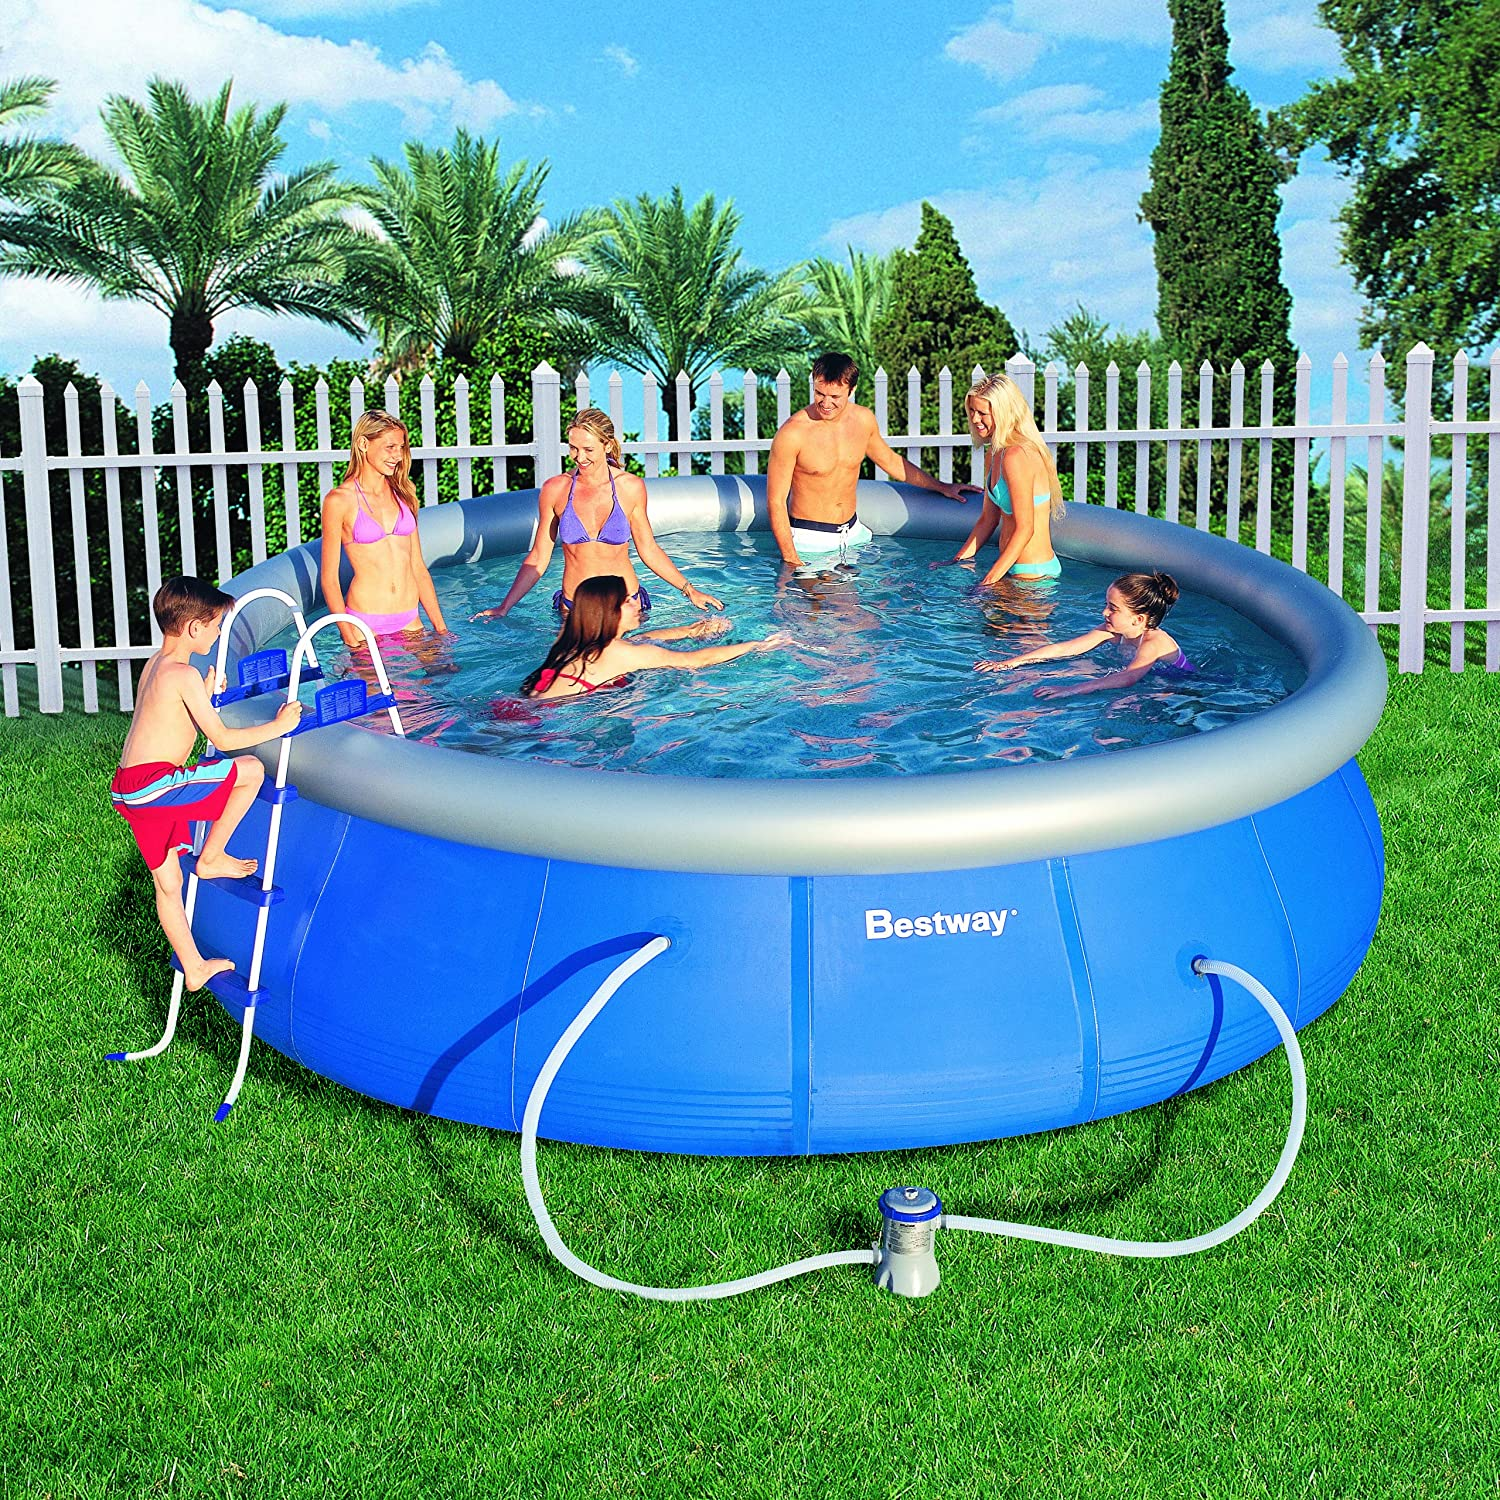 Best above ground pool reviews 2017 ultimate buying guide for Buying an above ground pool guide